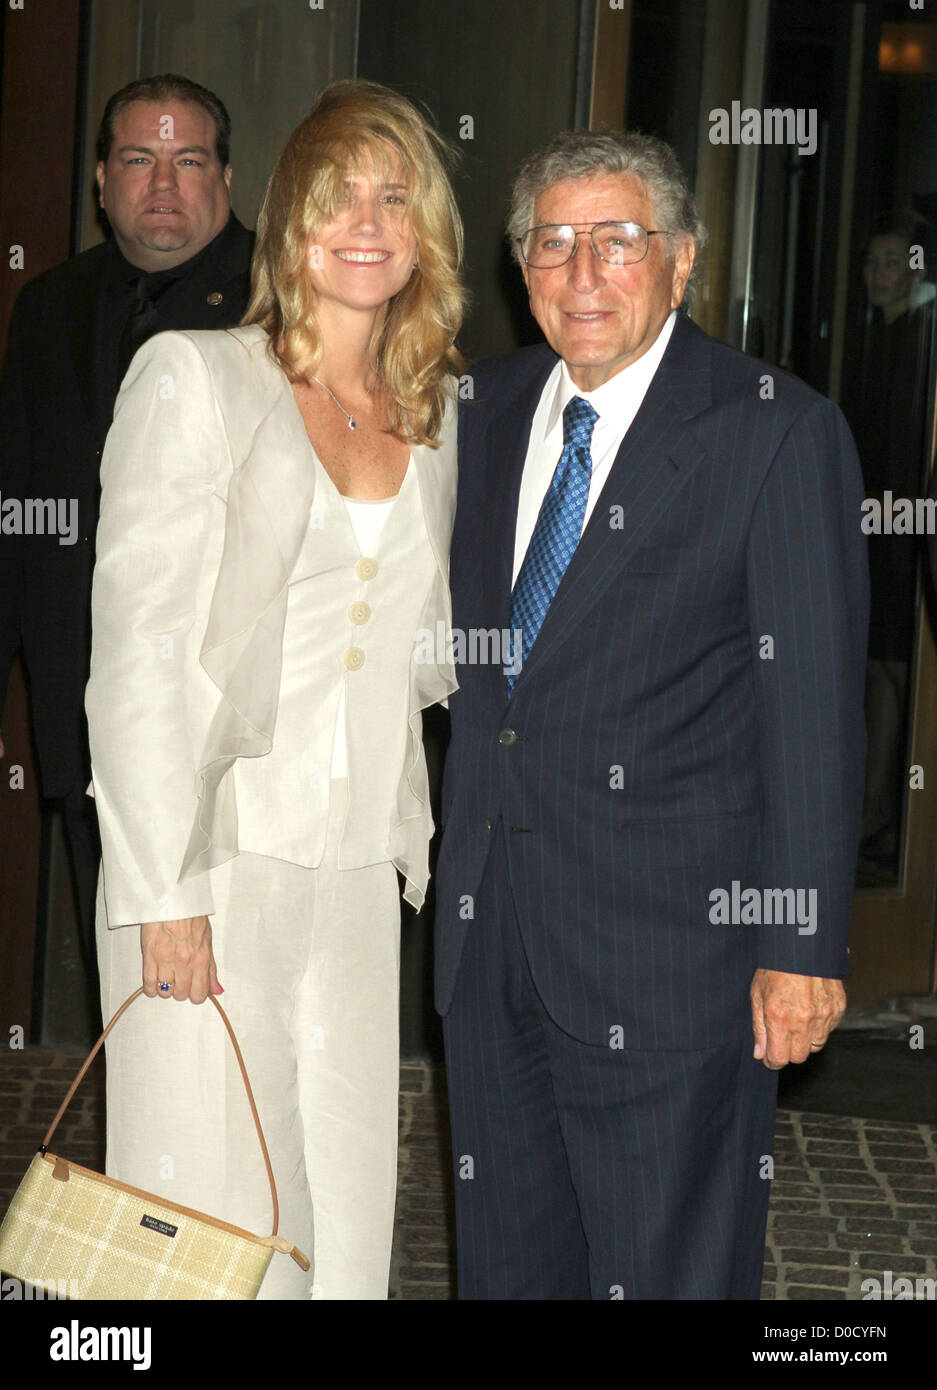 Susan Crow and Tony Bennett Screening of 'Conviction' held at the Tribeca Grand Hotel New York City, USA - Stock Image